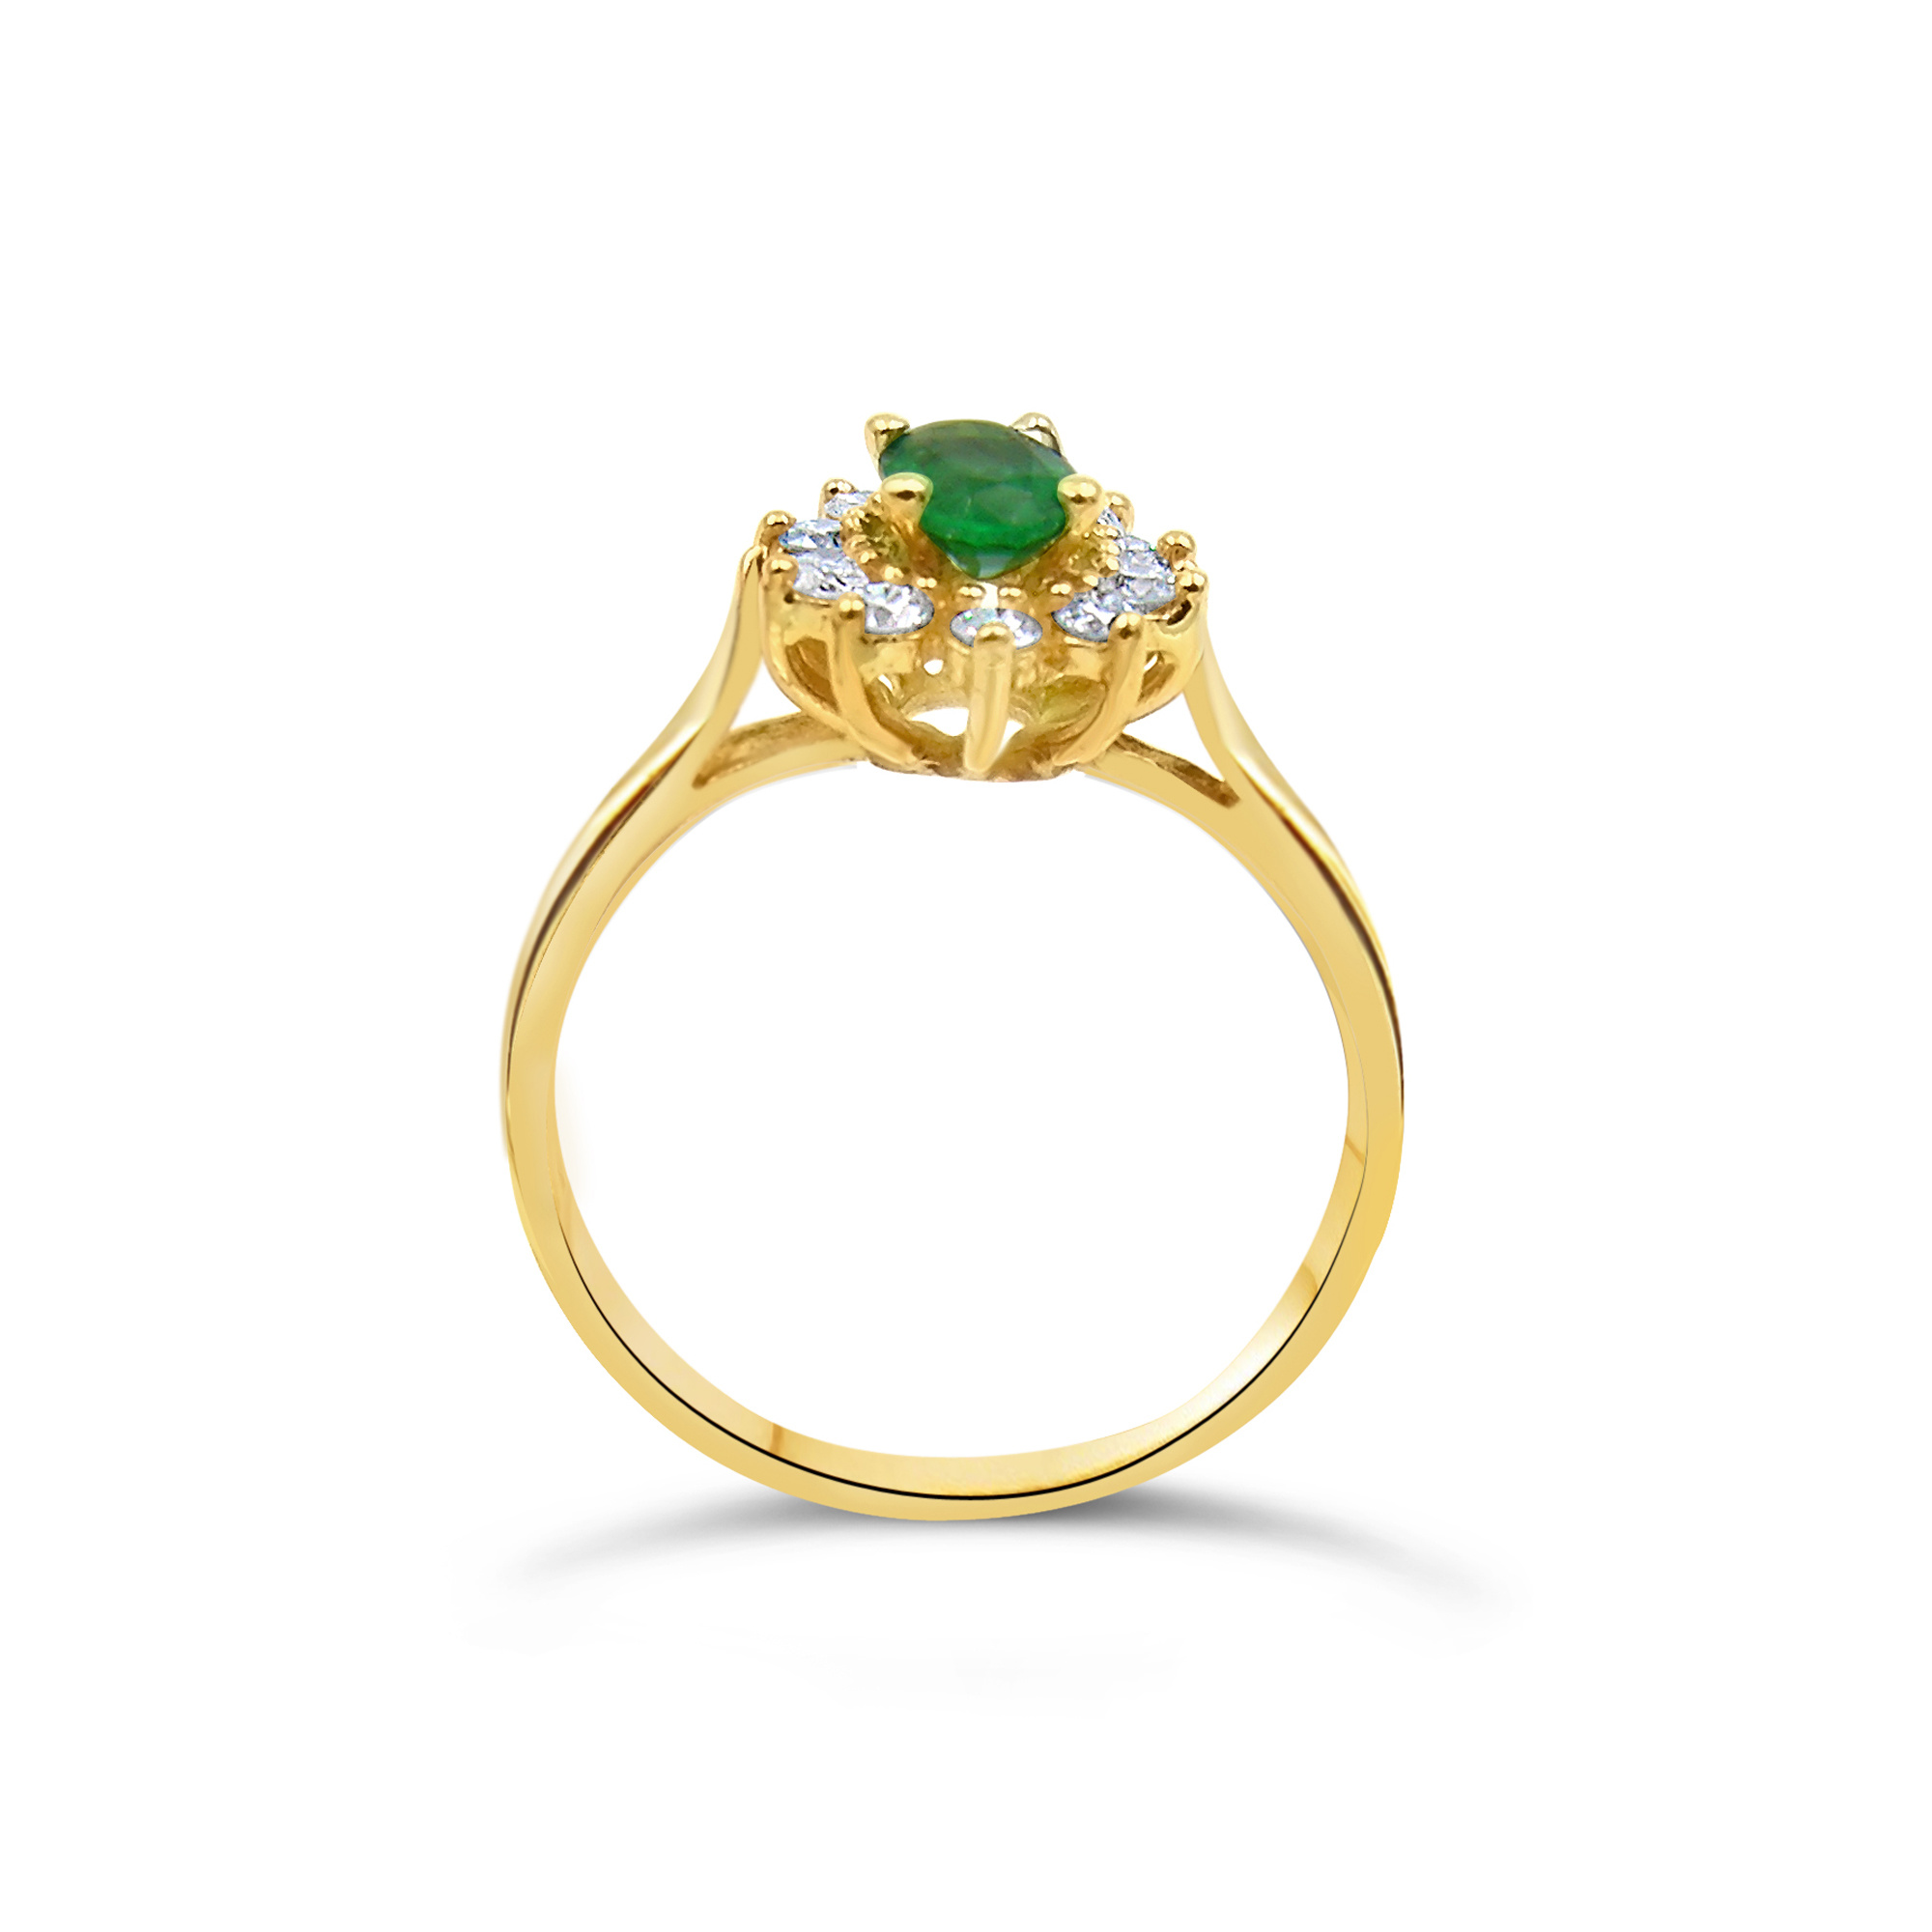 18 karaat geel goud ring met 0.30 ct diamanten en 0.50 ct smaragd